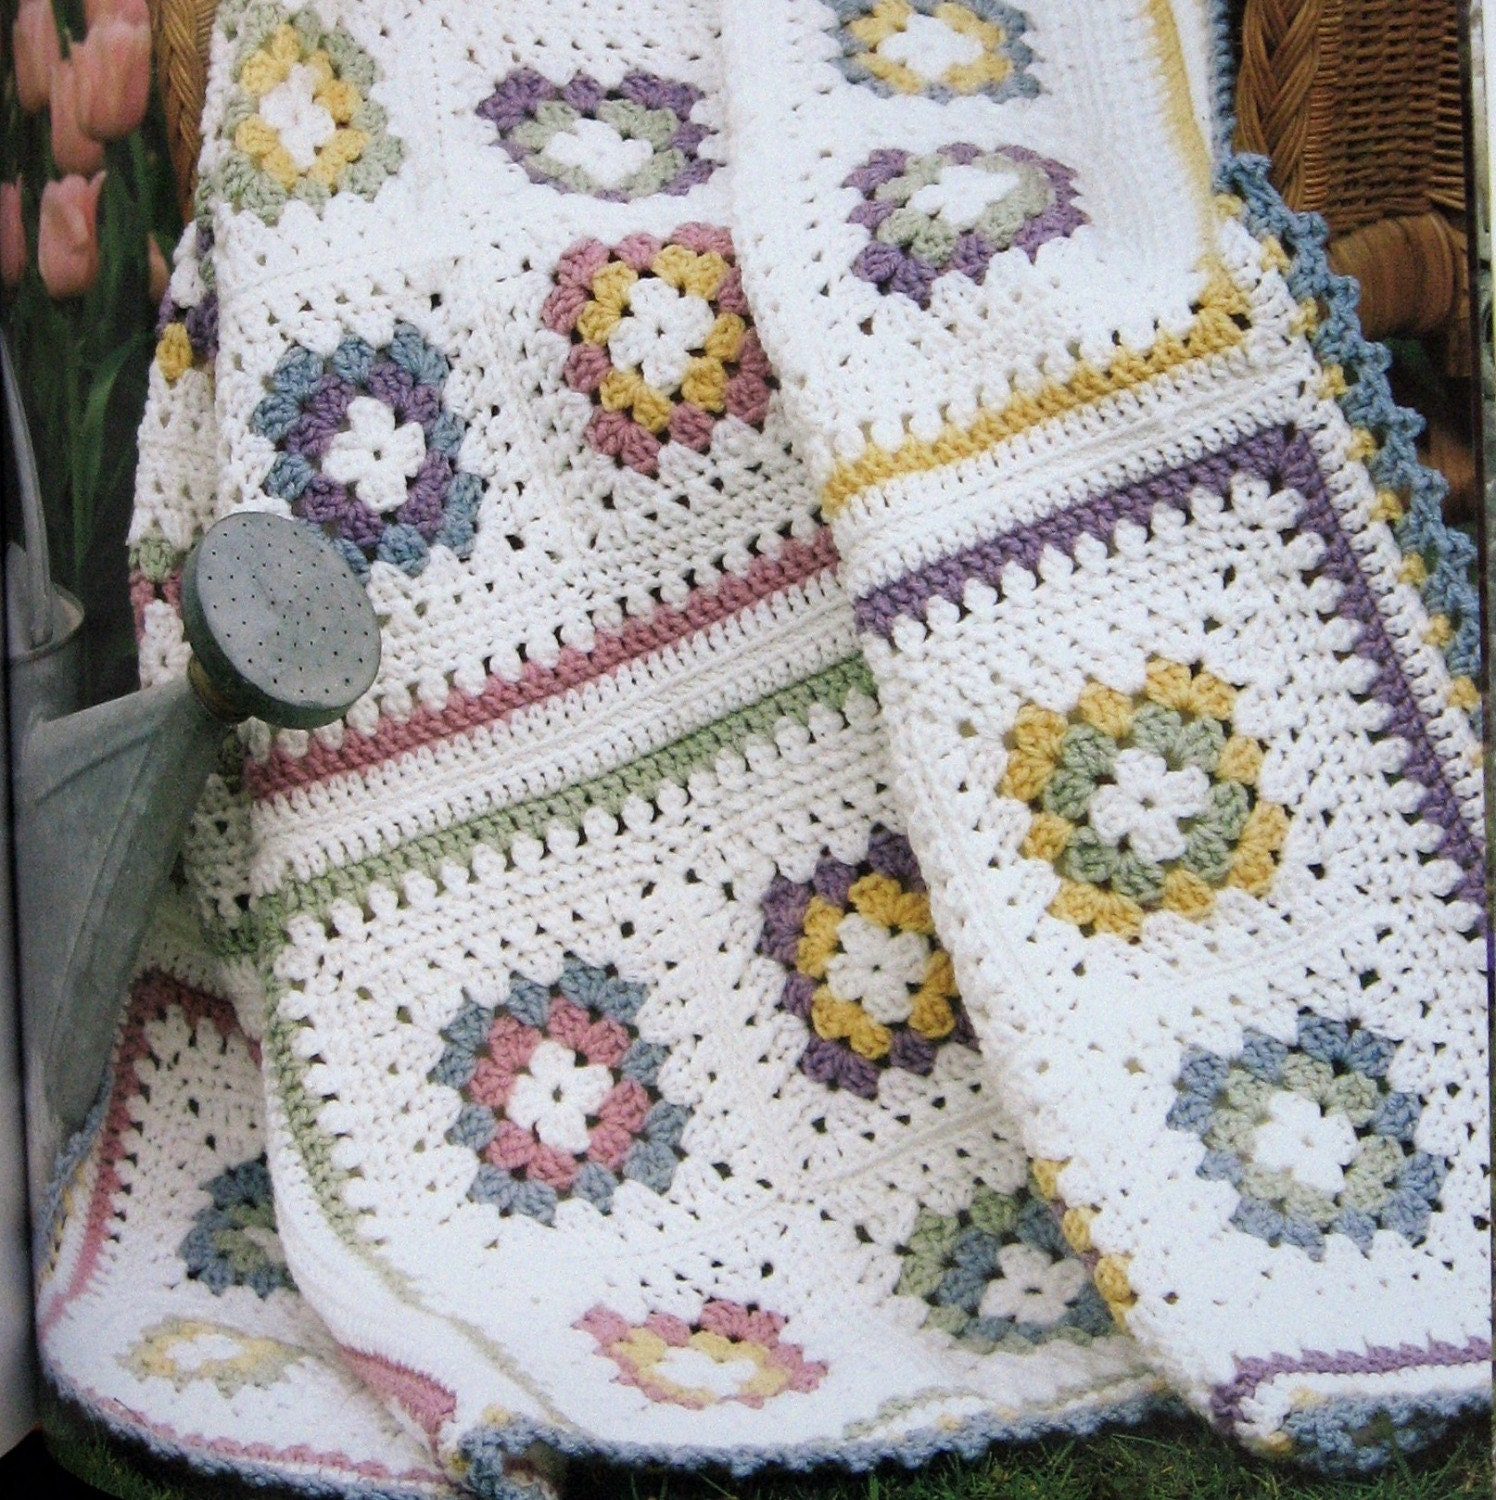 Crochet Blanket Patterns Quick : CROCHET AFGHAN PATTERNS Quick Stitch Hard Cover by kalliedesigns